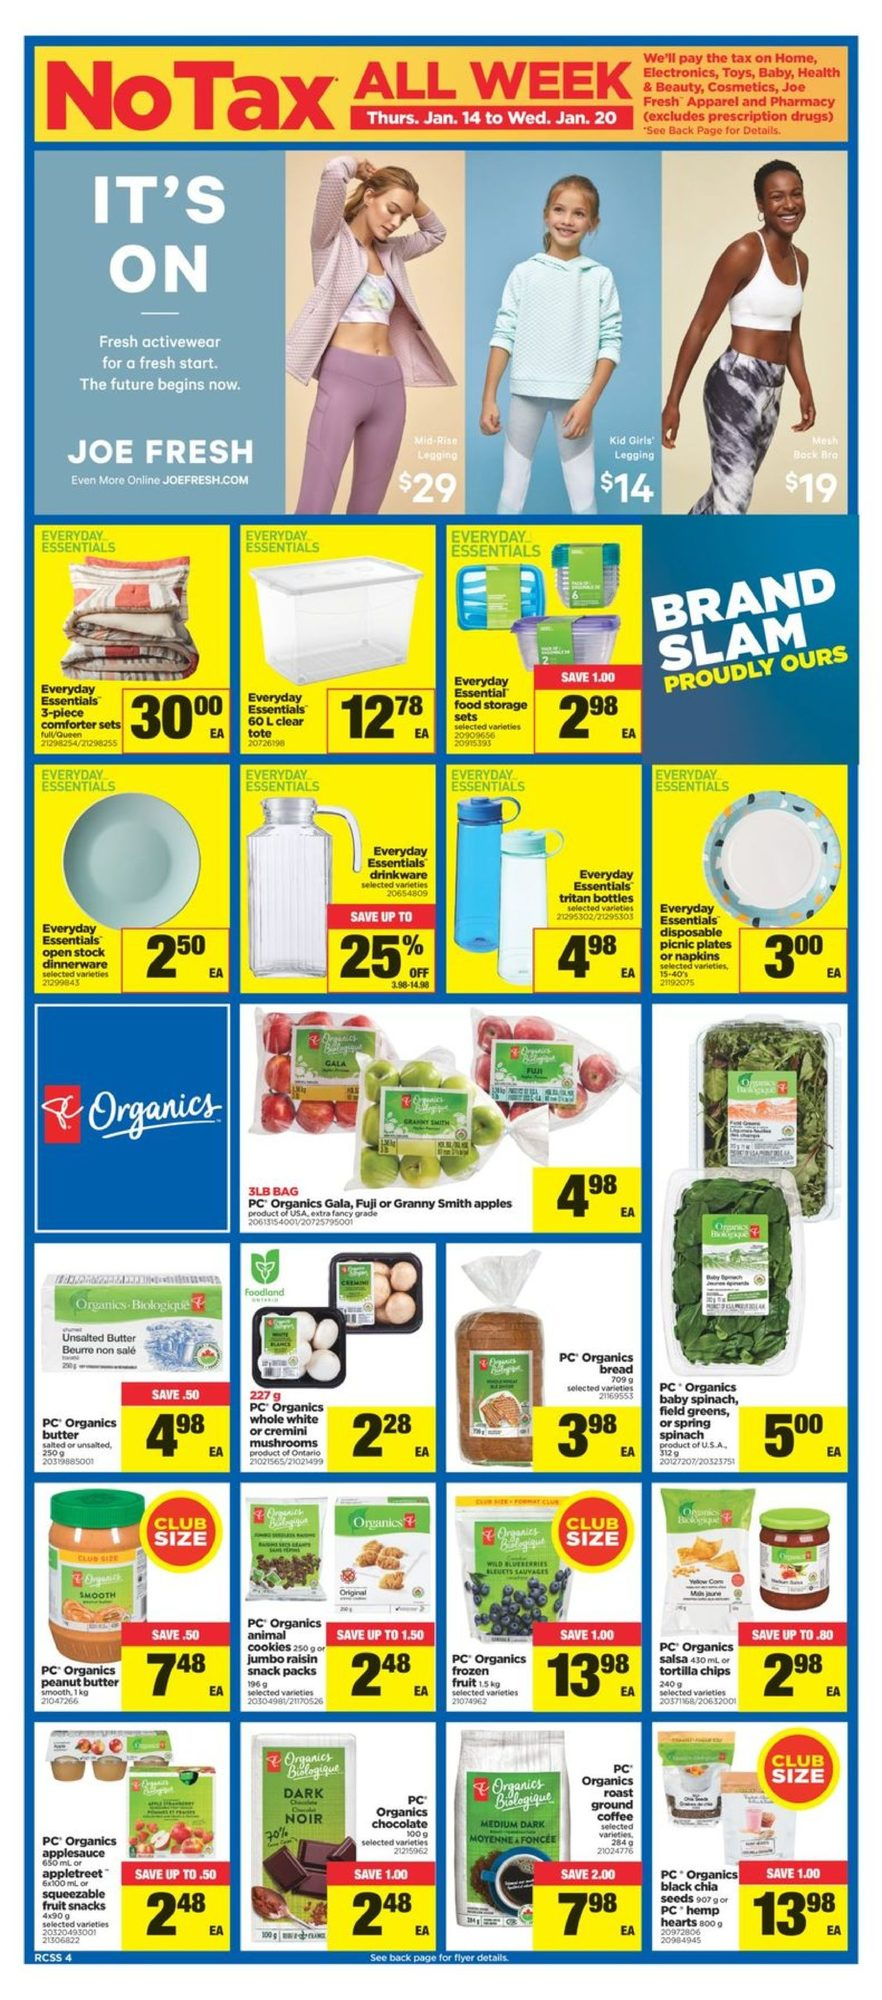 Real Canadian Superstore - Weekly Flyer Specials - Page 4